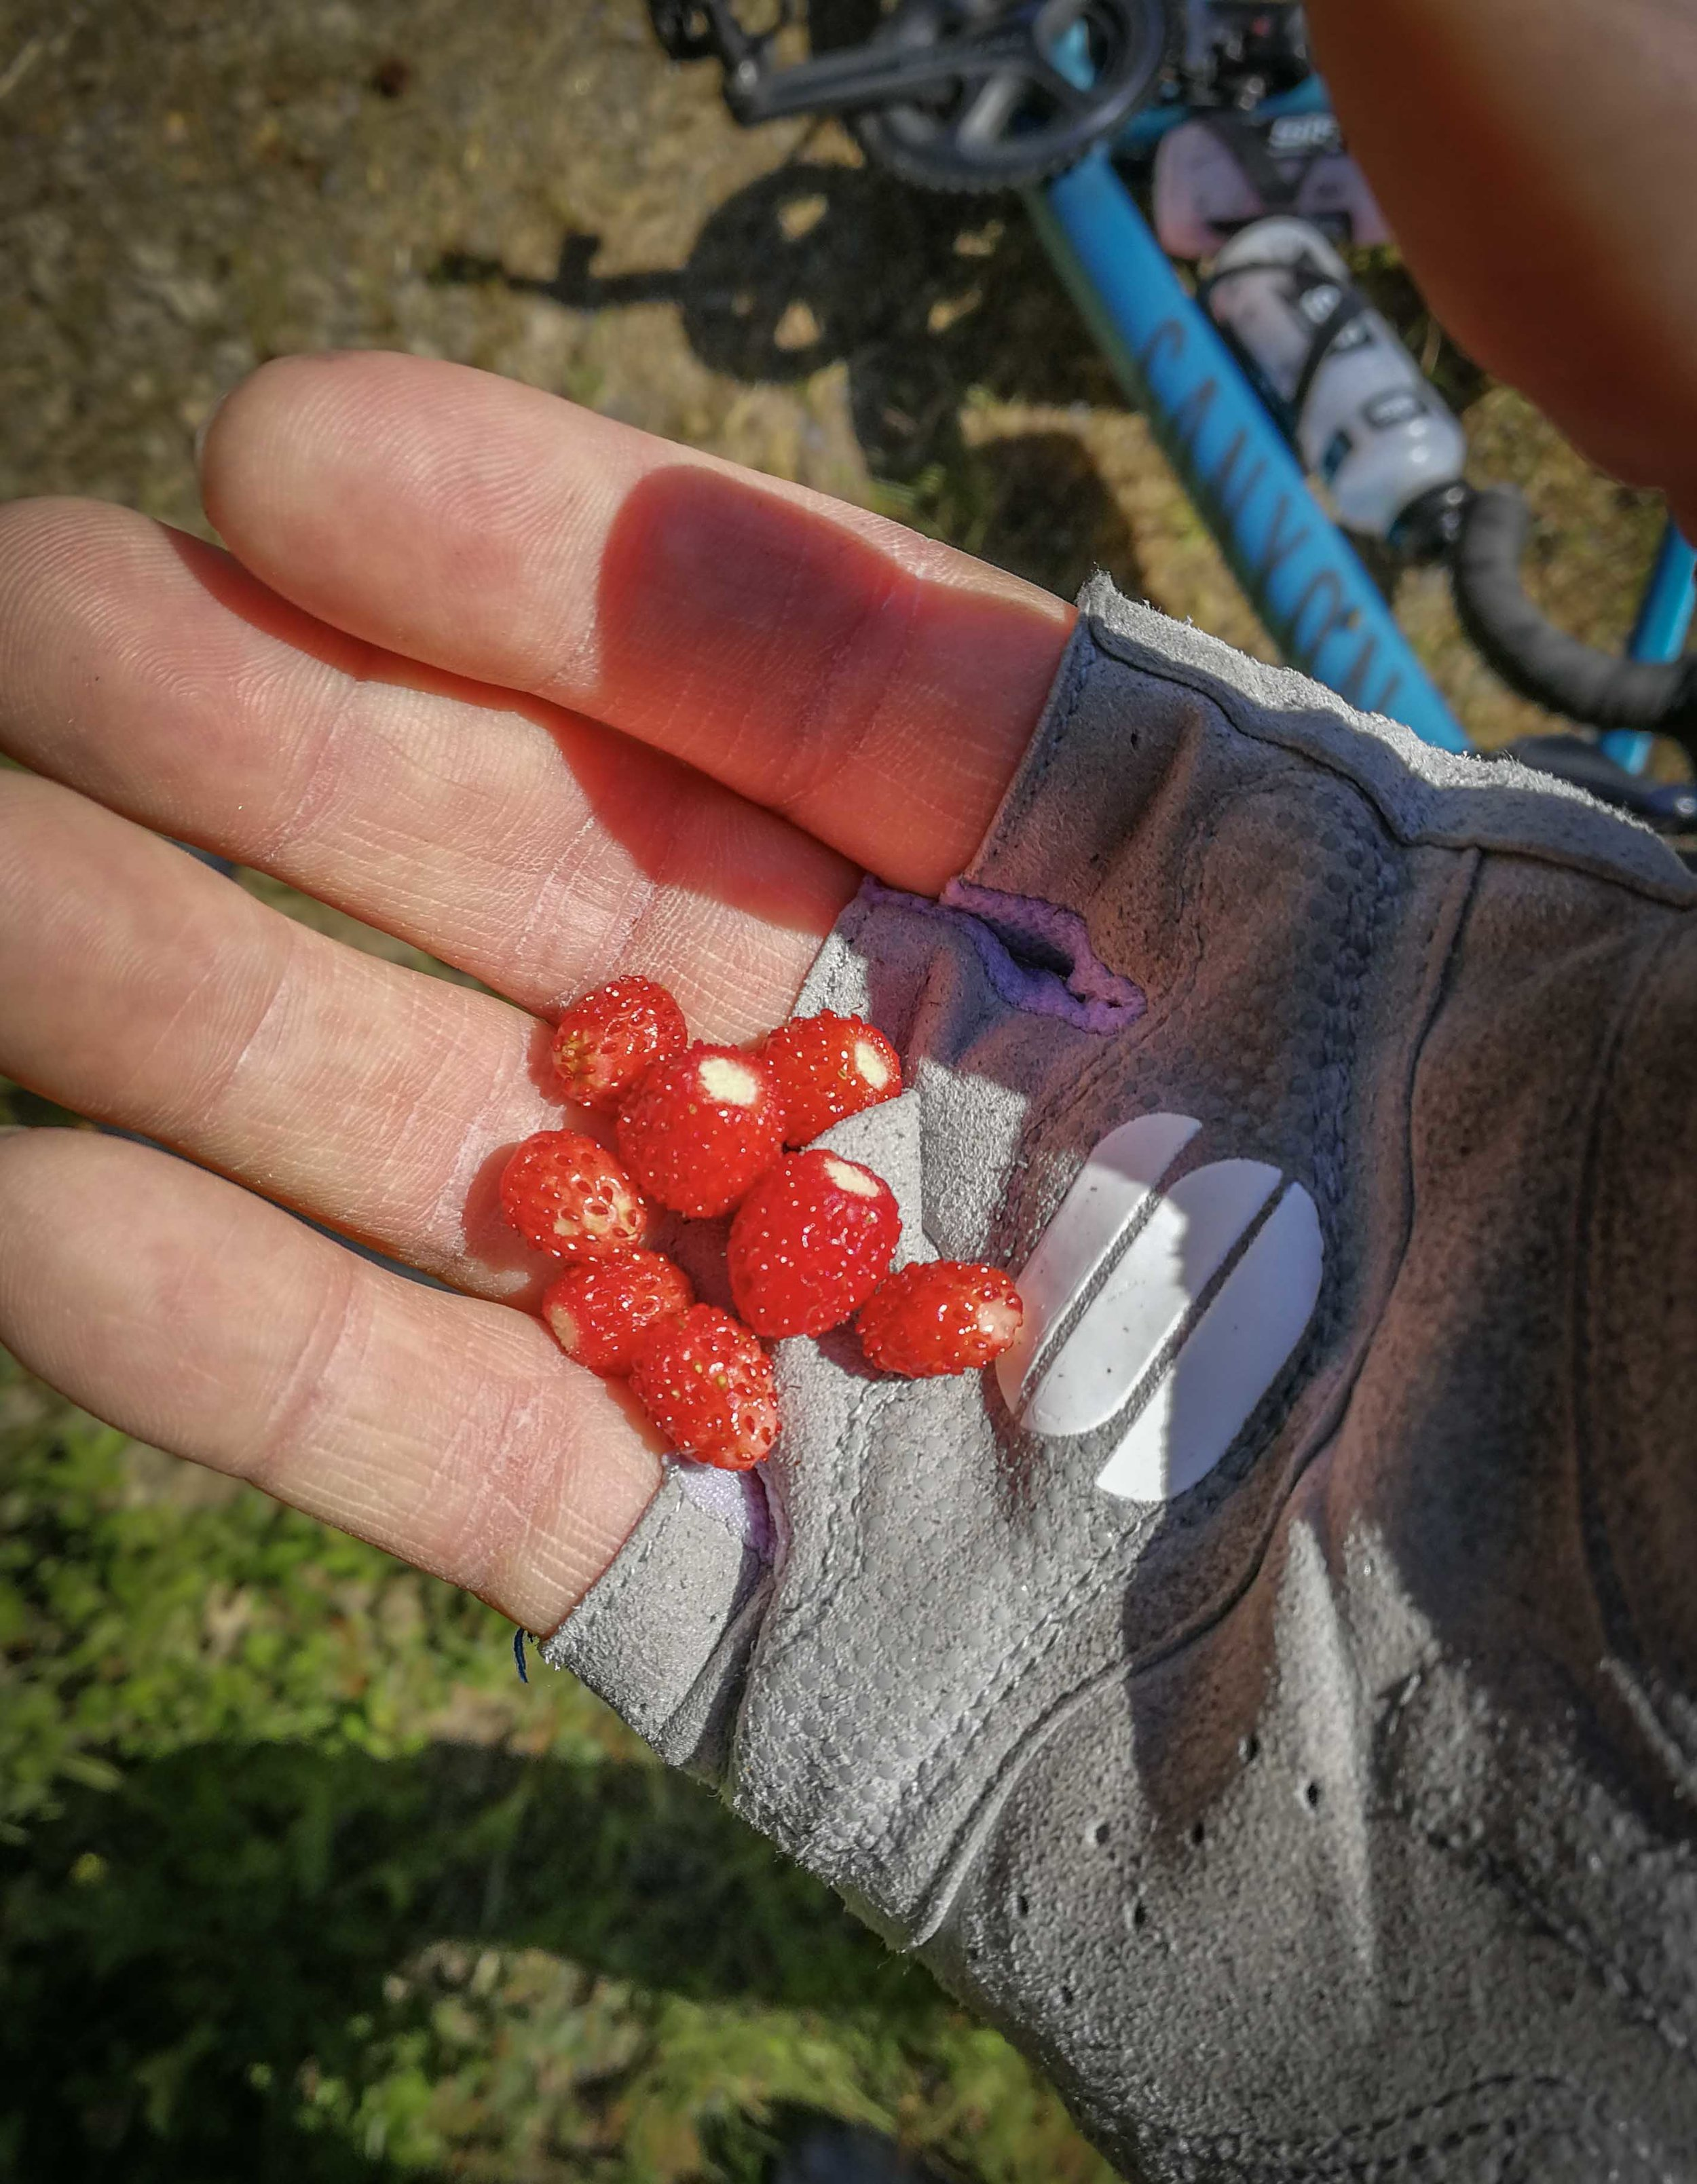 On my latest ride, I finally found wild strawberries. This really means summer for me, it's kinda childish, but this really is a ritual for me. No summer without eating these during a ride.